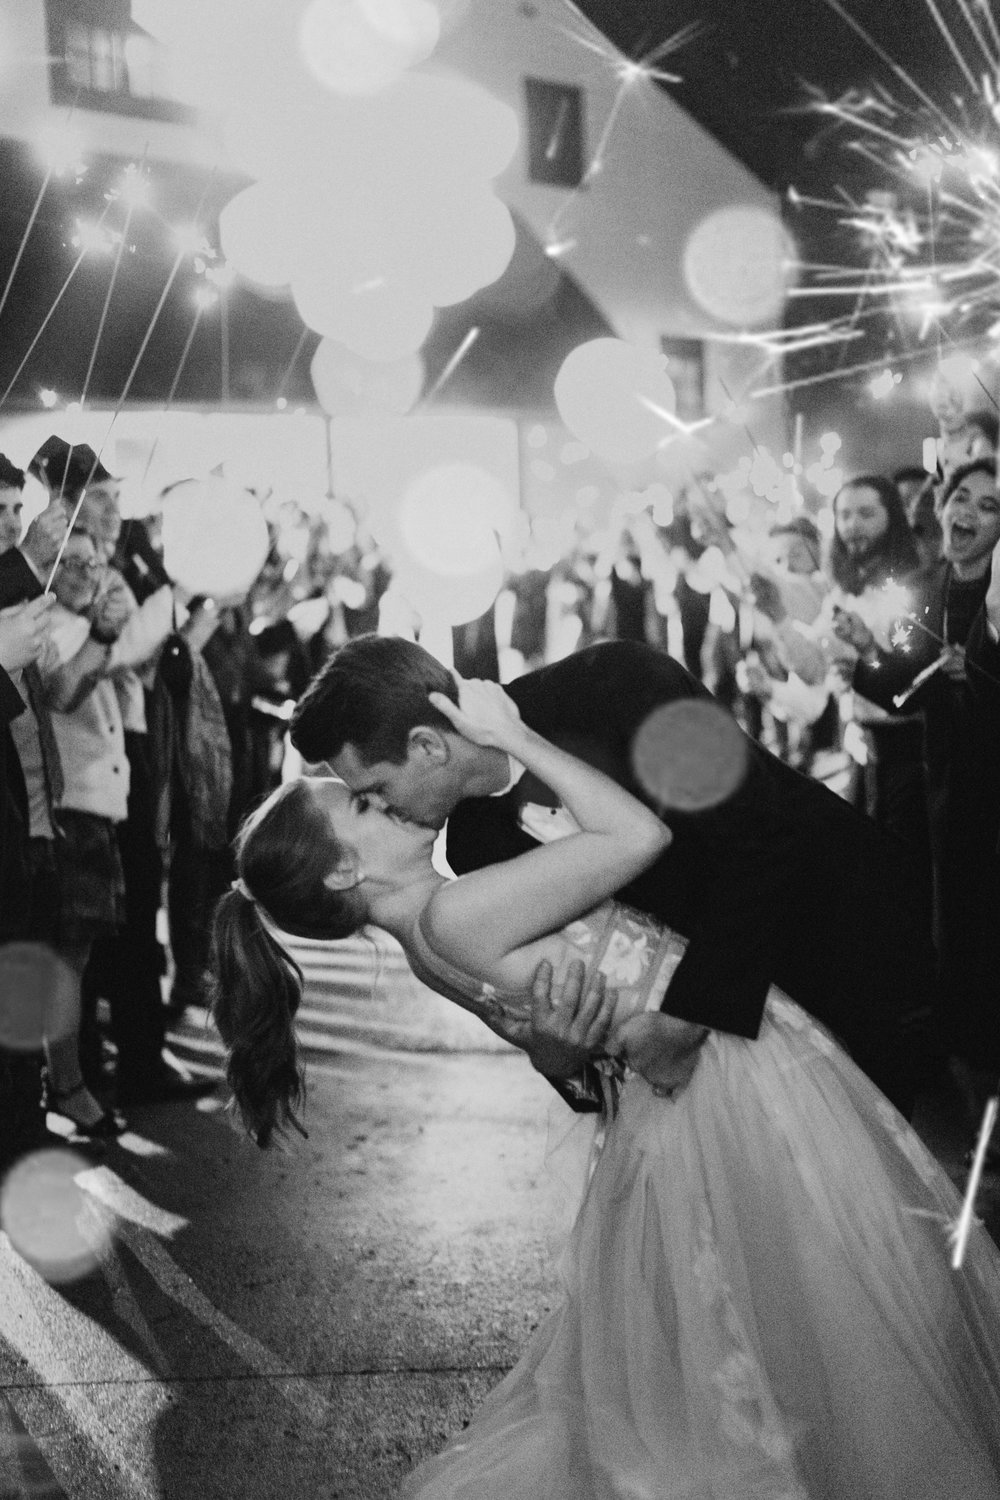 NashvilleWedding_NewYearsEveWedding_NYE_NashvilleWeddingPhotographer_LovelessWedding_Tennessee_MollyPeachPhotography-122.jpg